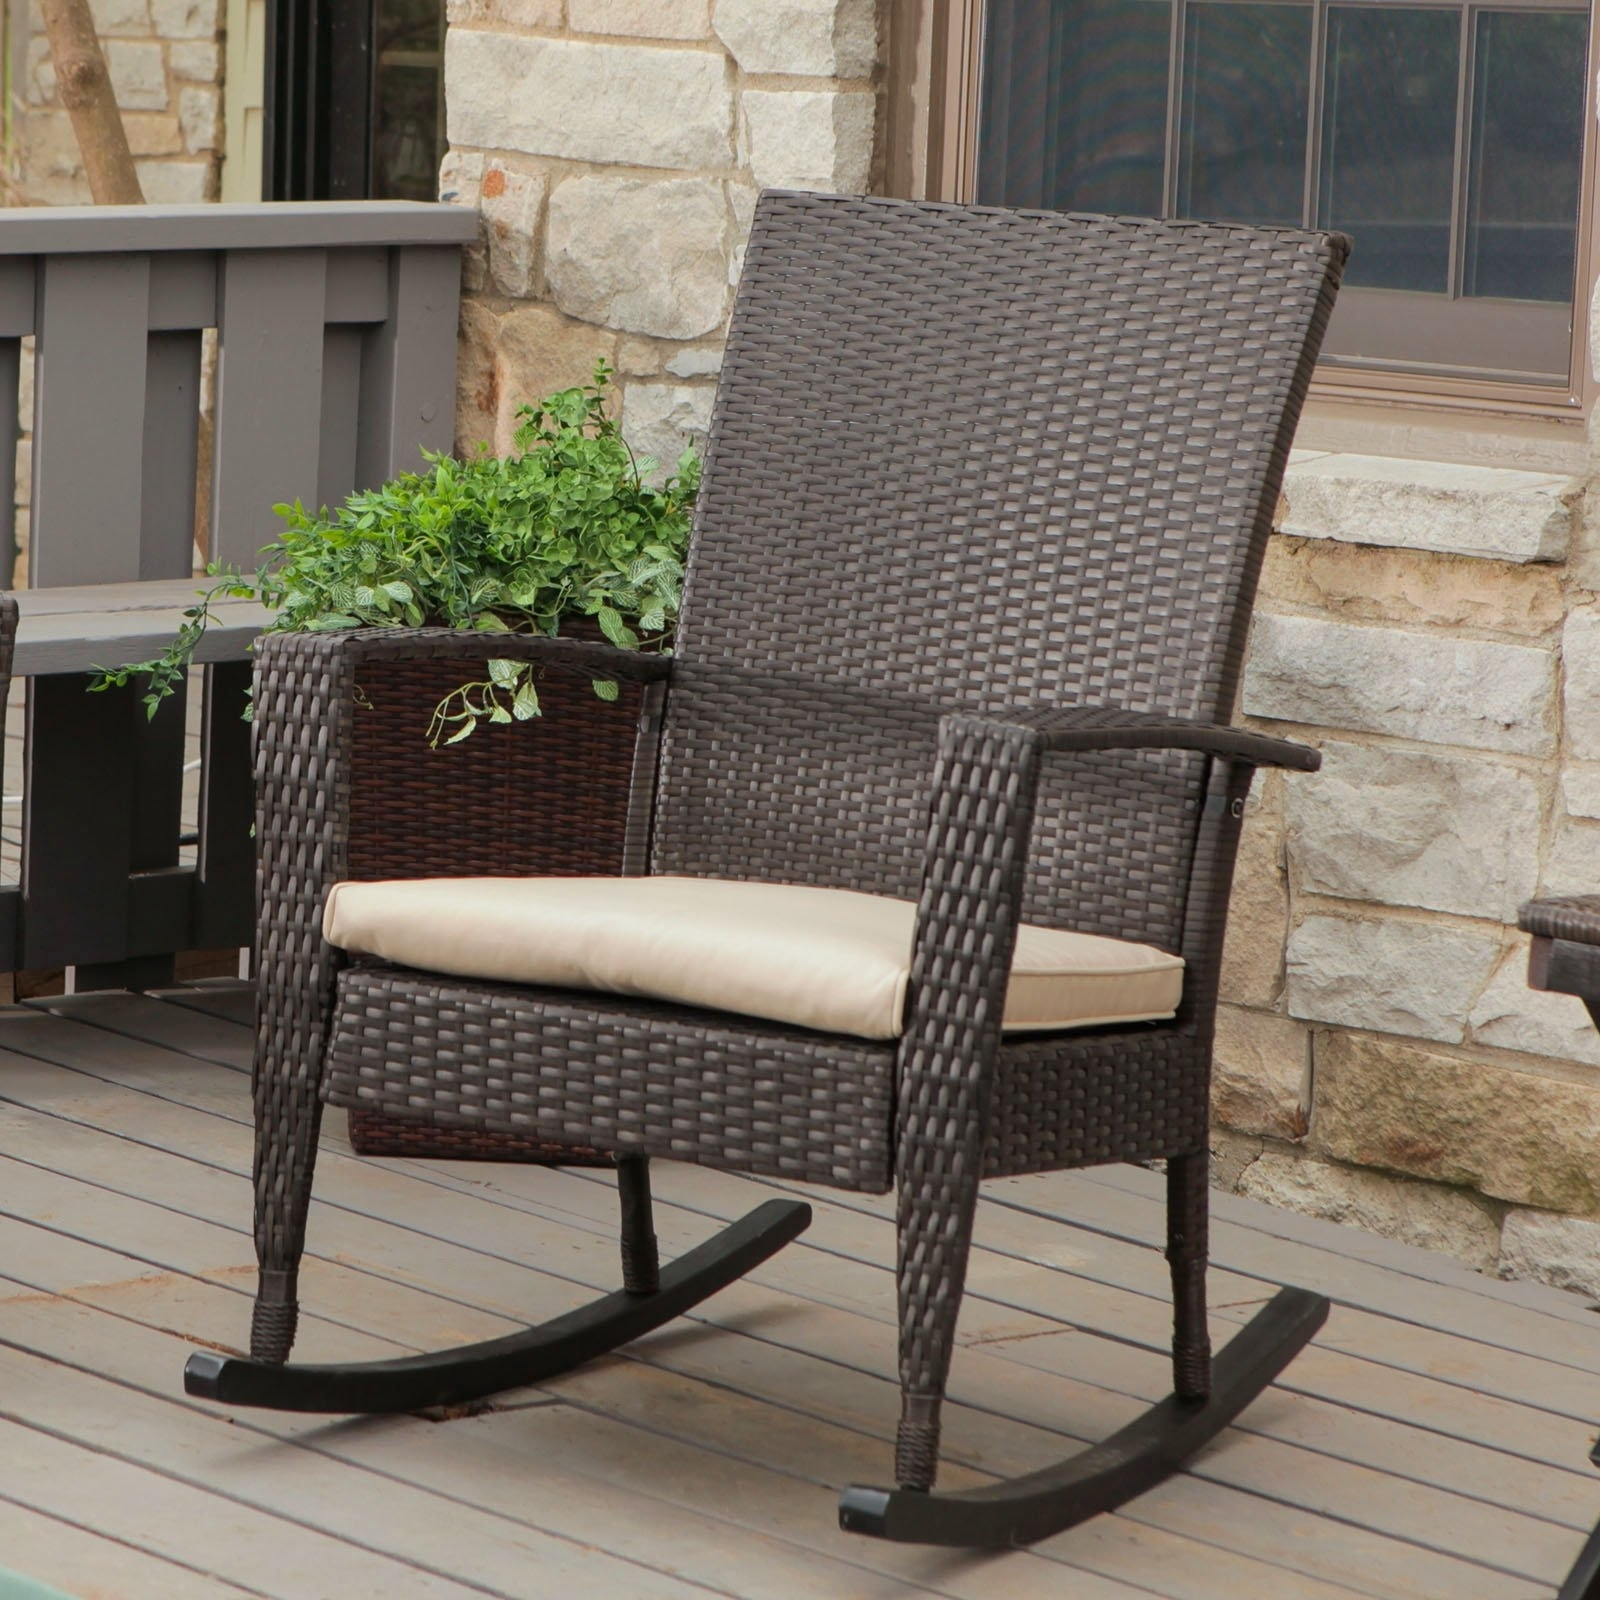 Well-liked Resin Patio Rocking Chairs pertaining to Resin Patio Rocking Chairs : Spectacular And Sensational Patio